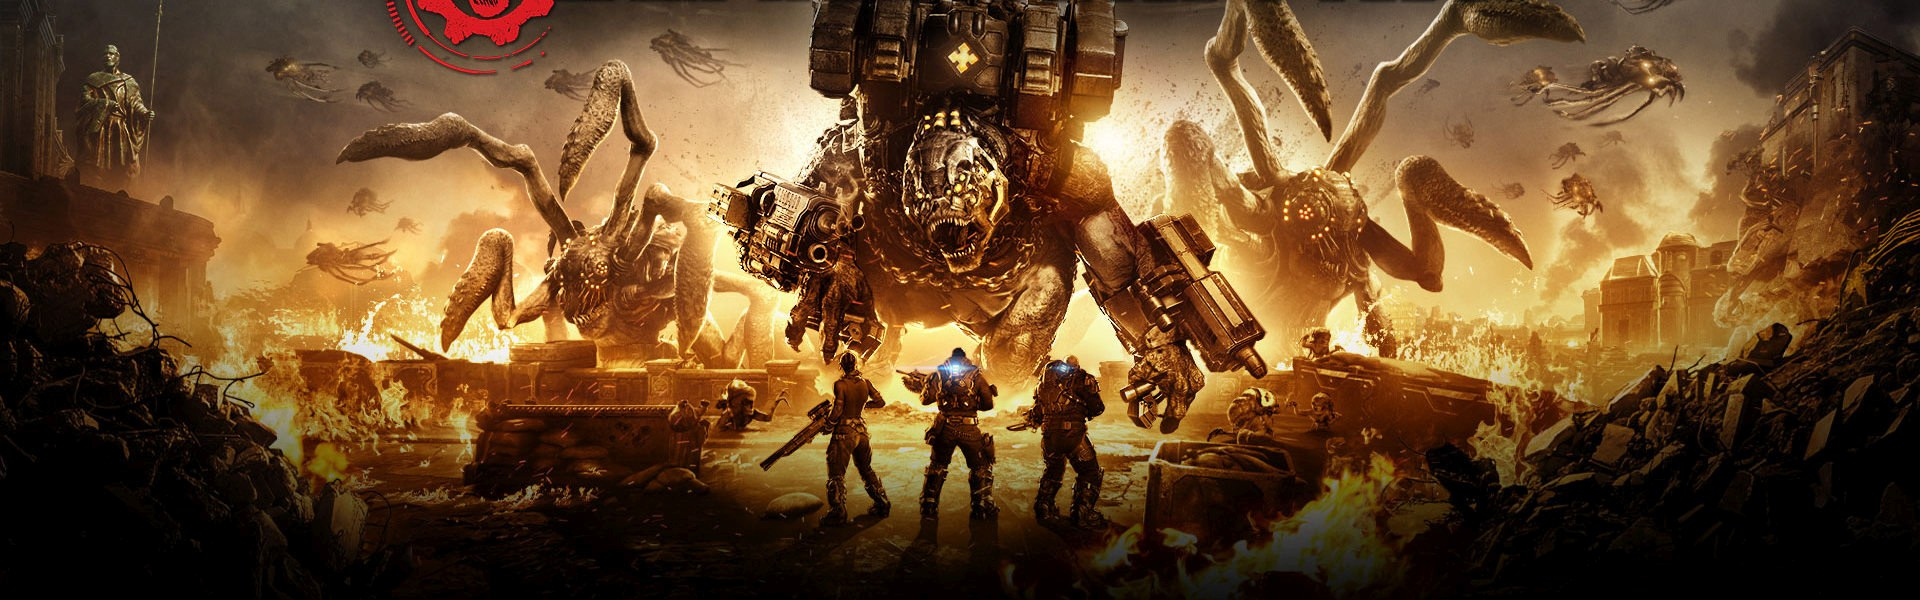 Gears Tactics - Windows 10 Store Key UNITED STATES